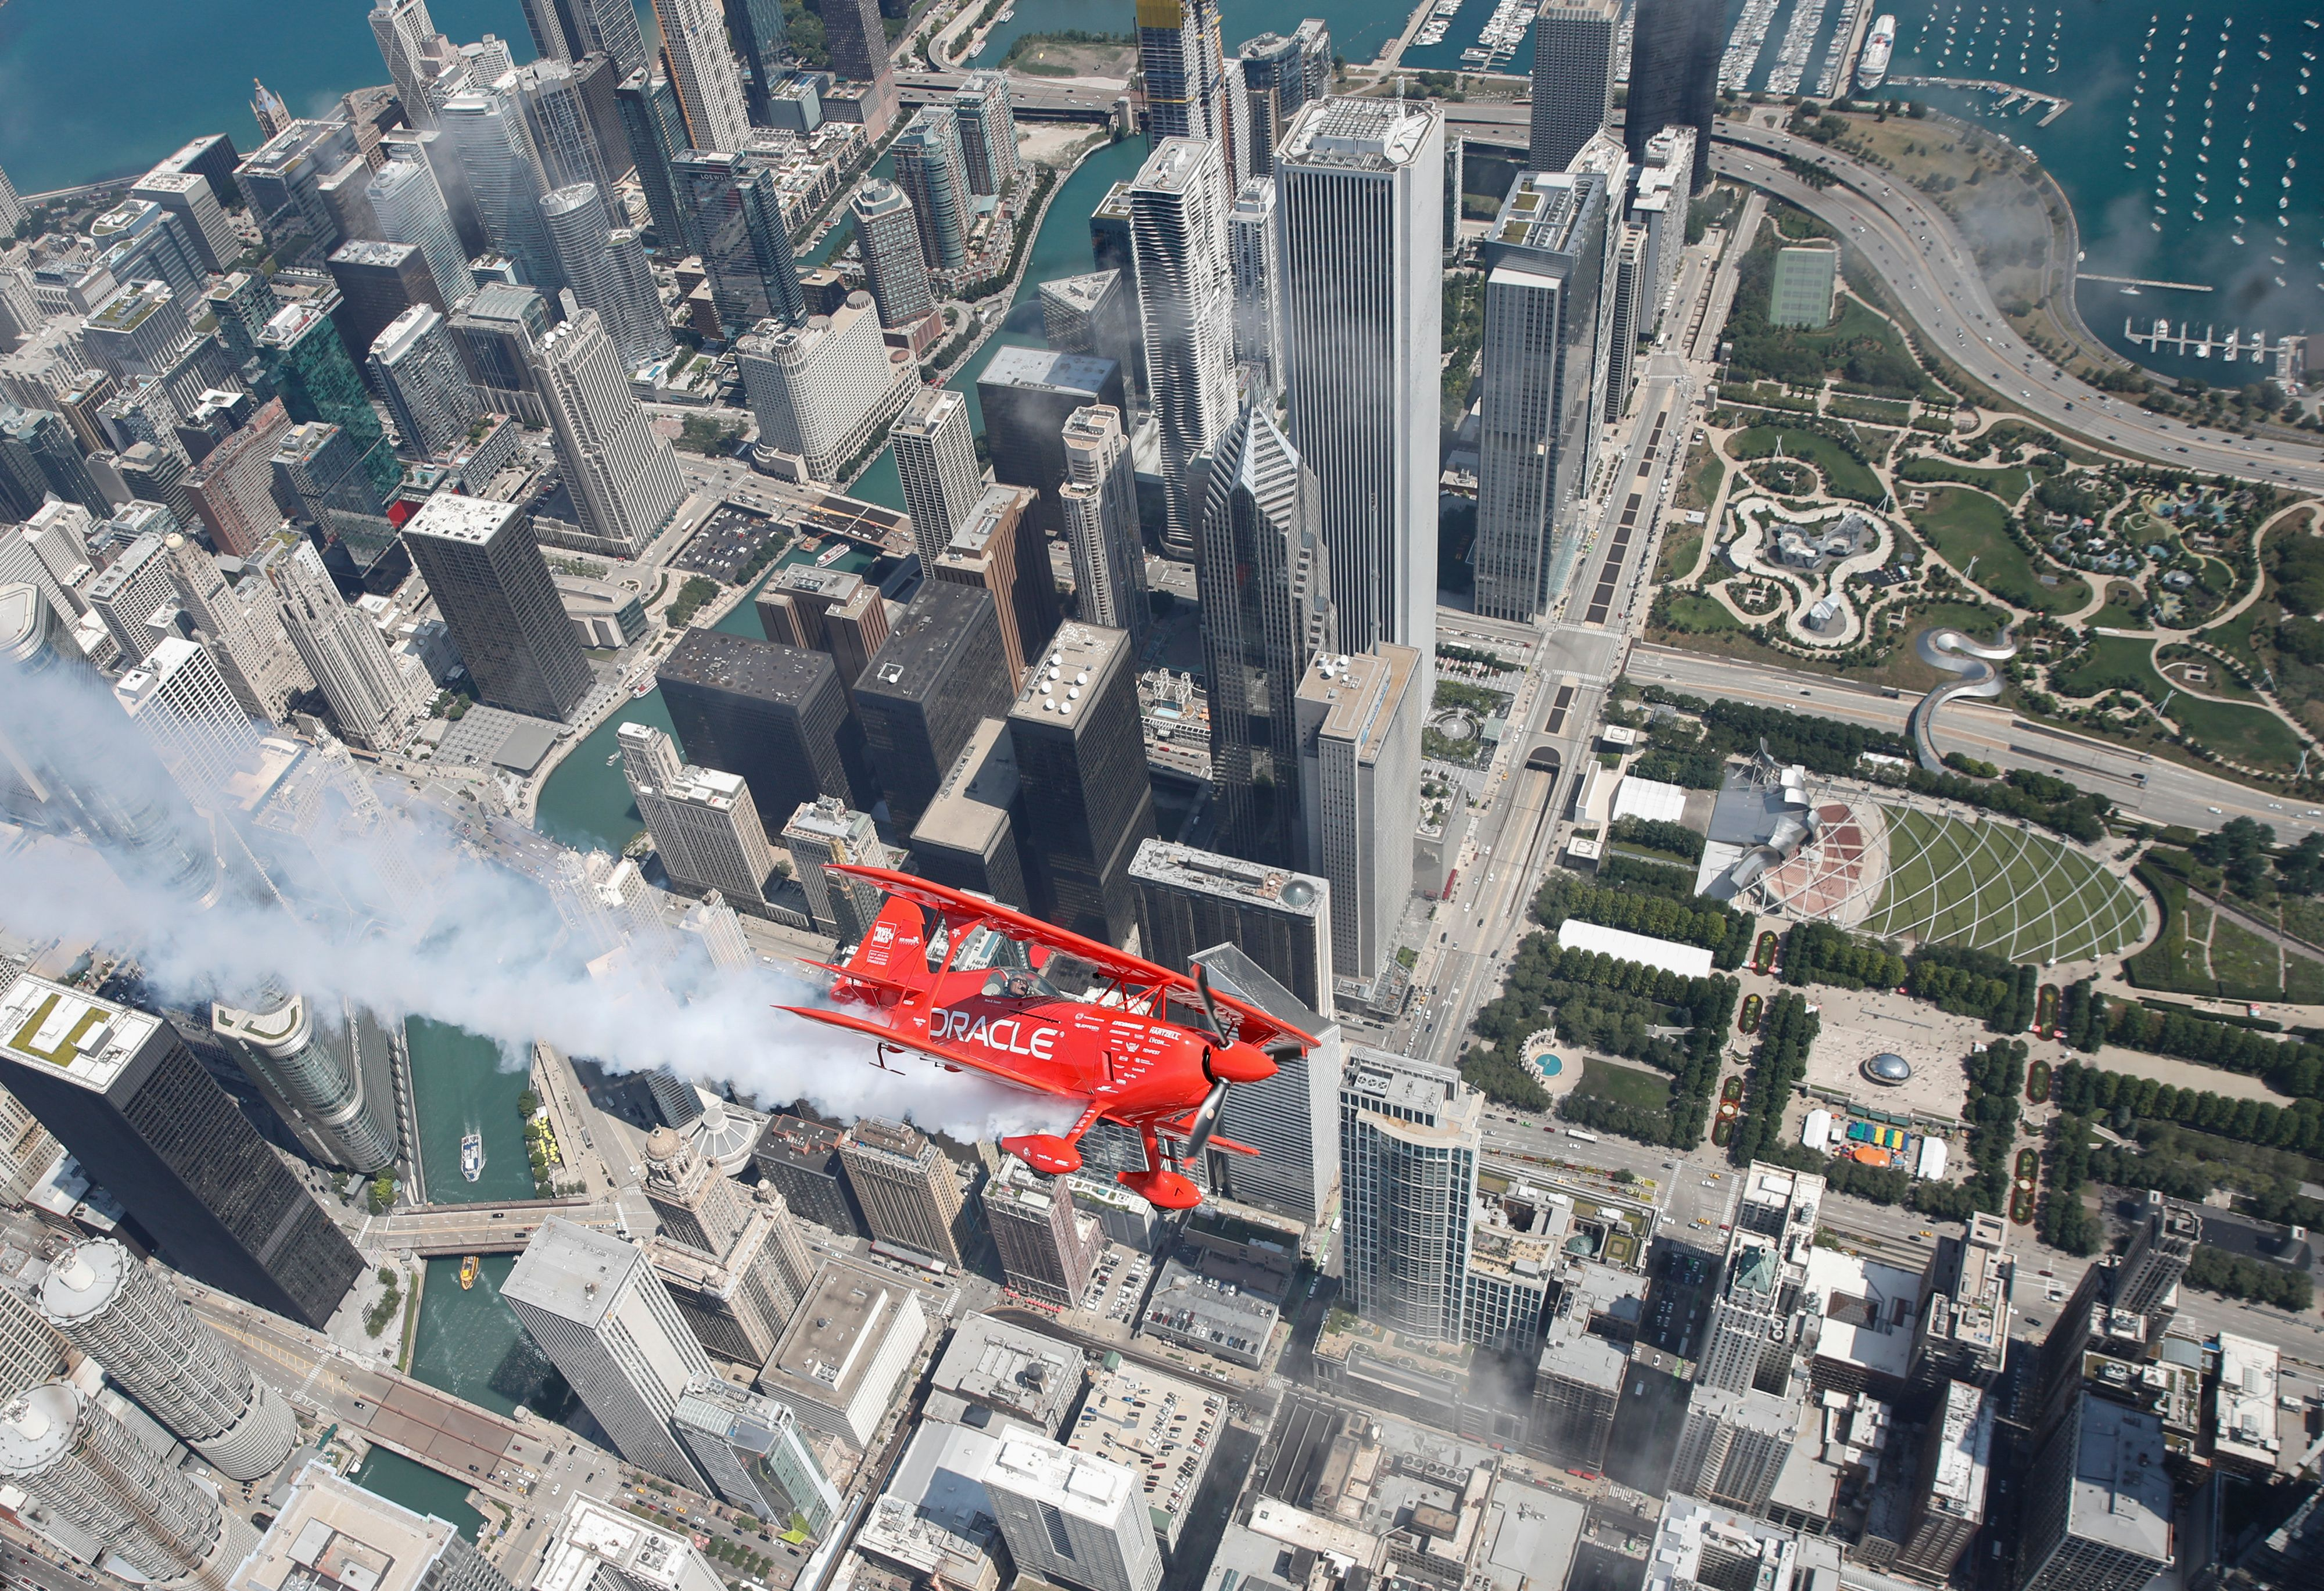 A red biplane leaves a fluffy smoke contrail as it flies over downtown Chicago. Tall buildings, a blue lake, and a green park are visible below.